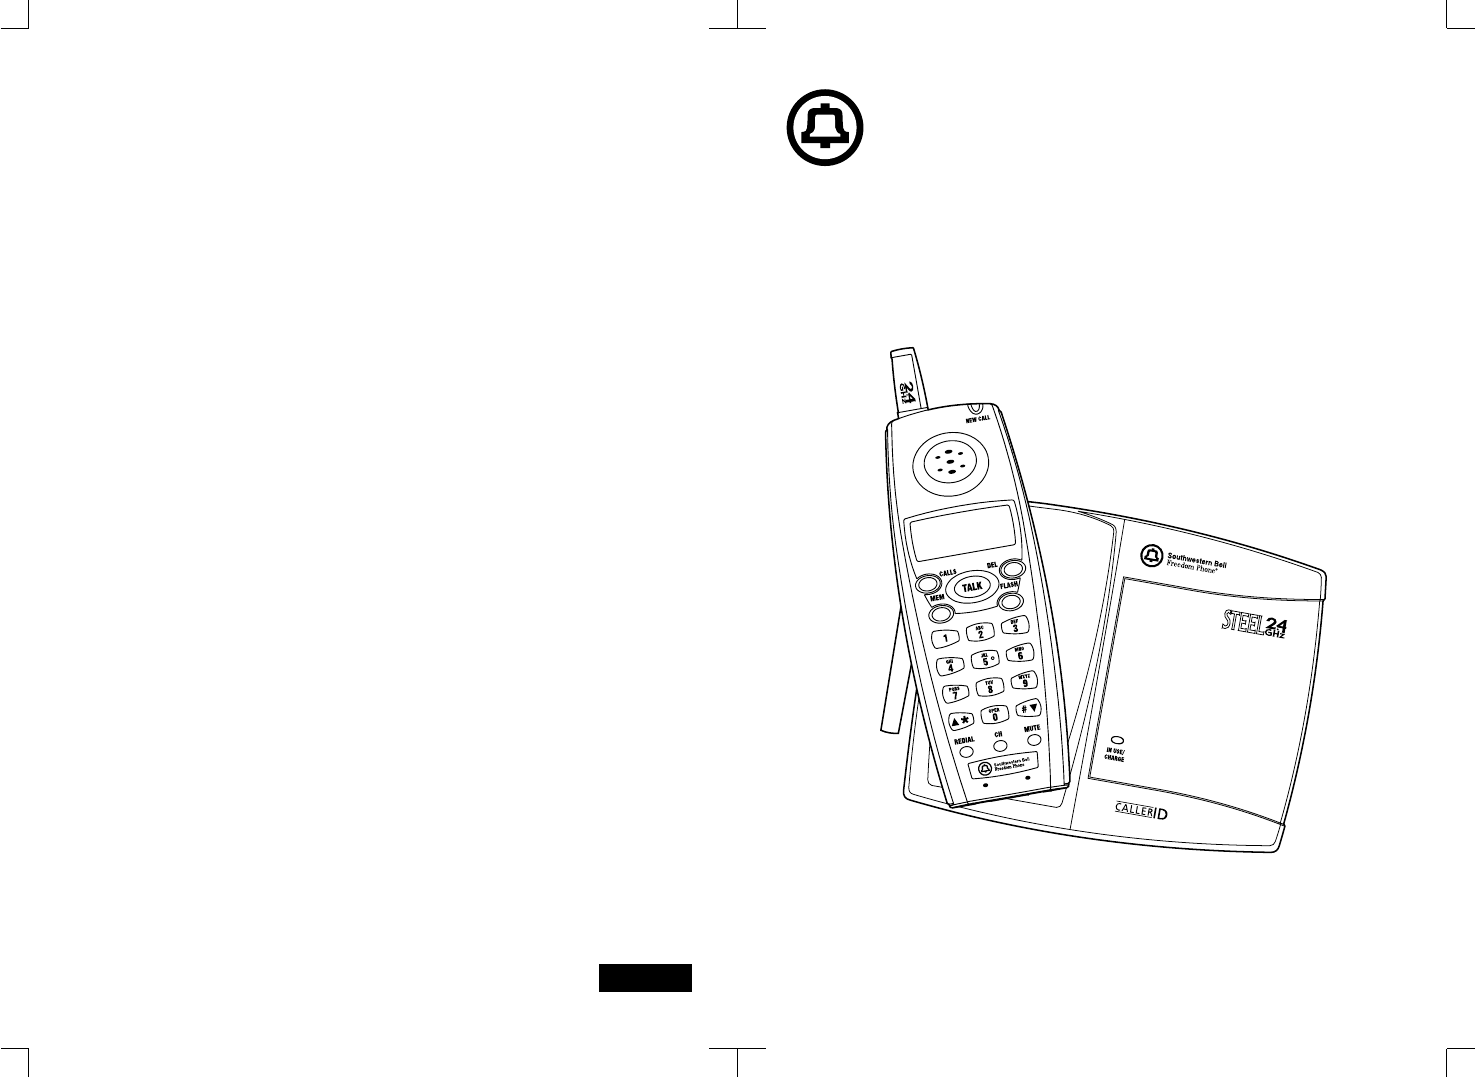 Southwestern Bell Cordless Telephone GH3010S User Guide